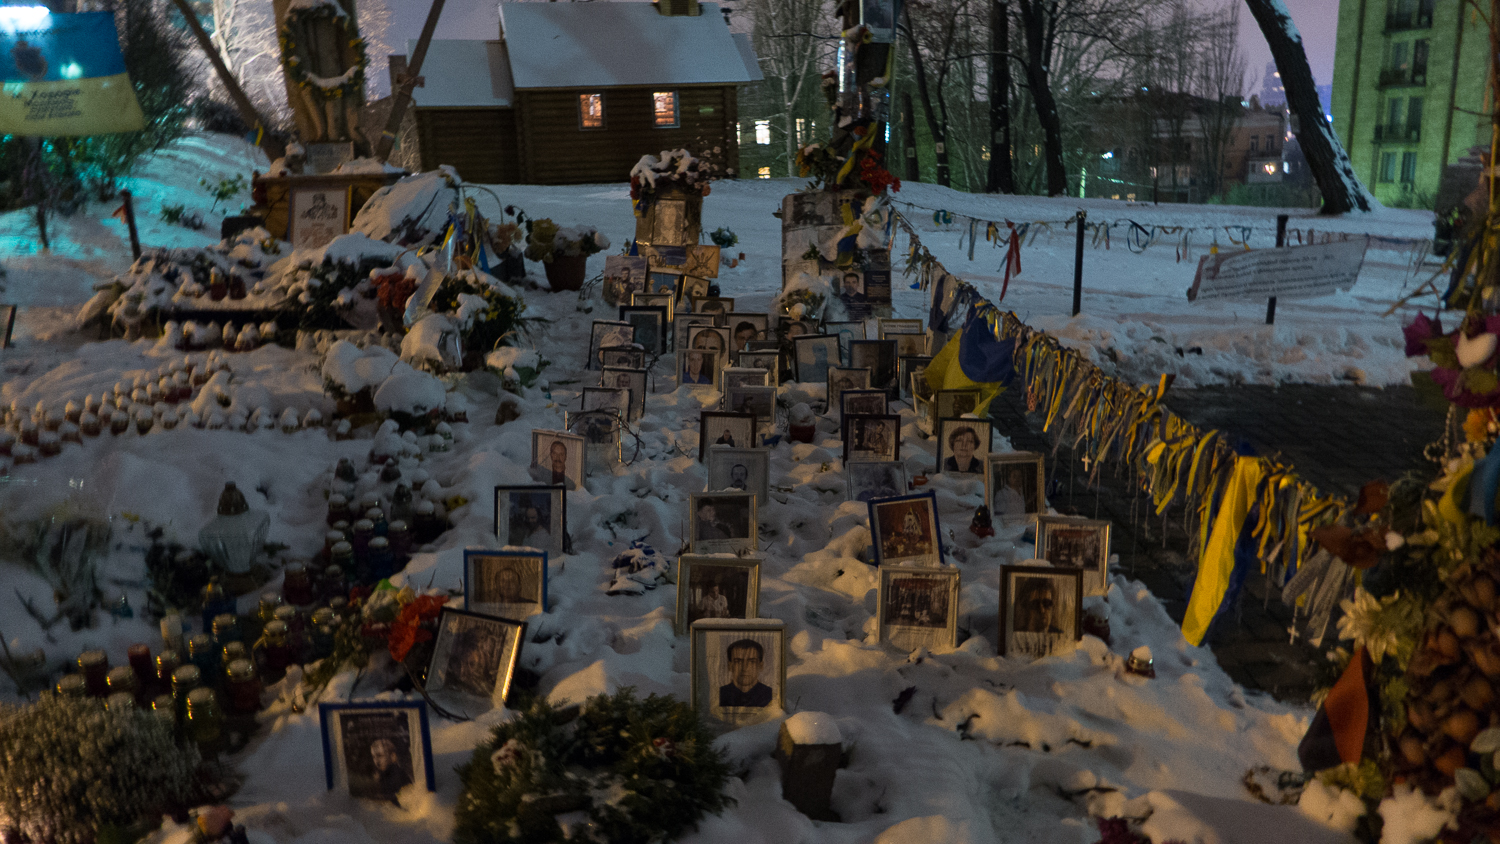 A makeshift shrine remembers the Ukrainians killed during the protests in Maidan Square. (Photo: Sean Gallagher for Index on Censorship)